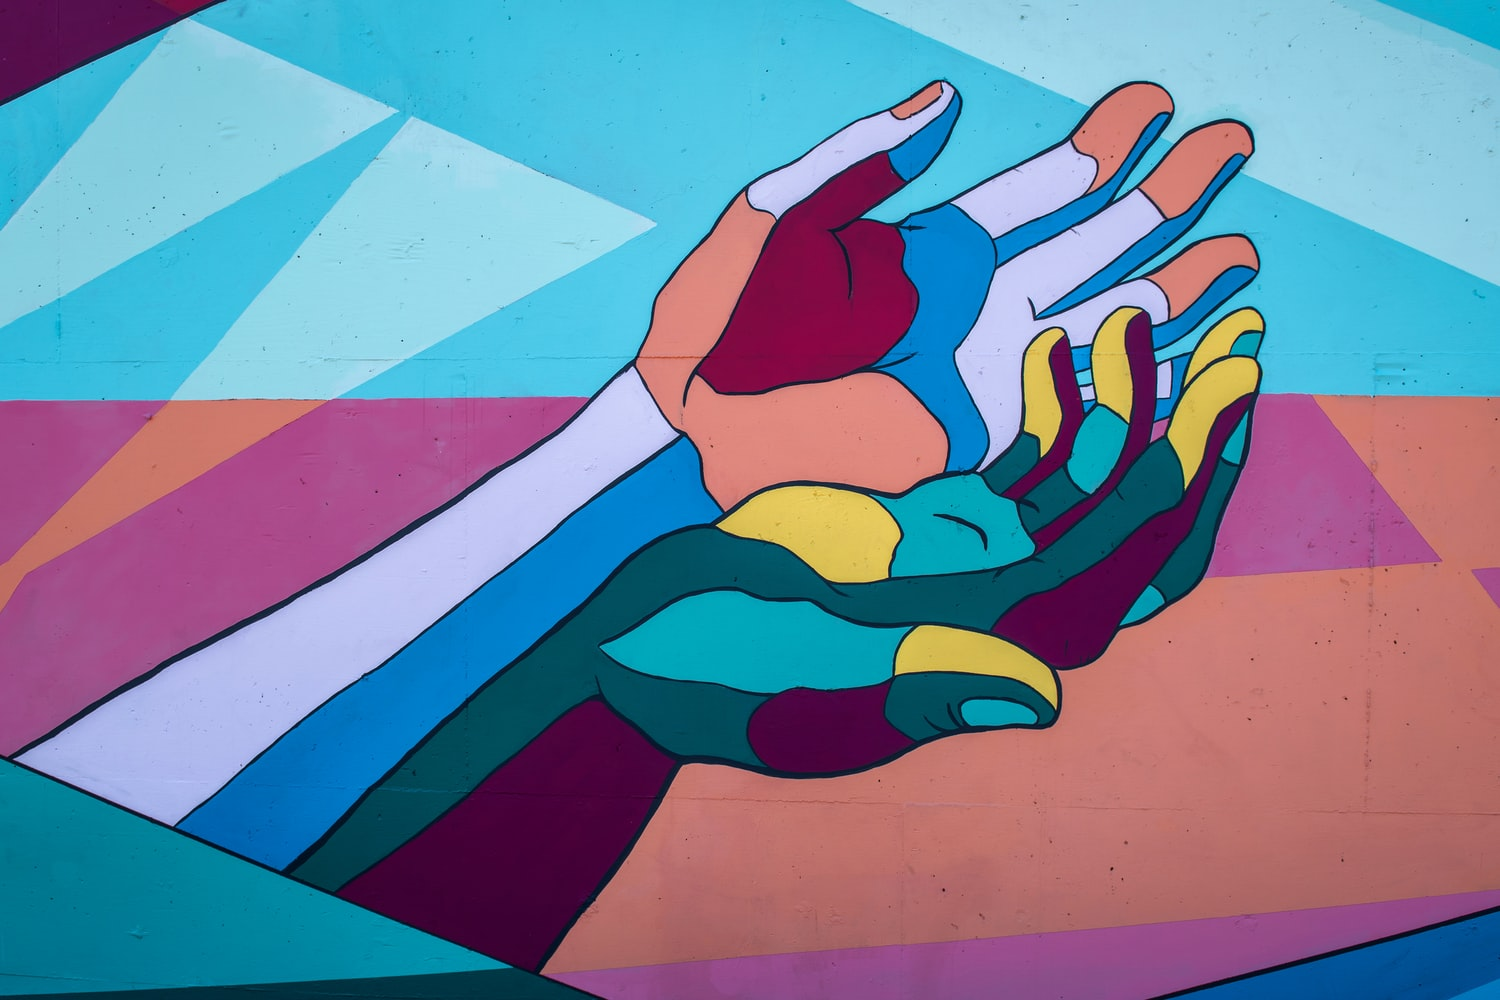 Close shot of a mural of painted hands outstretched